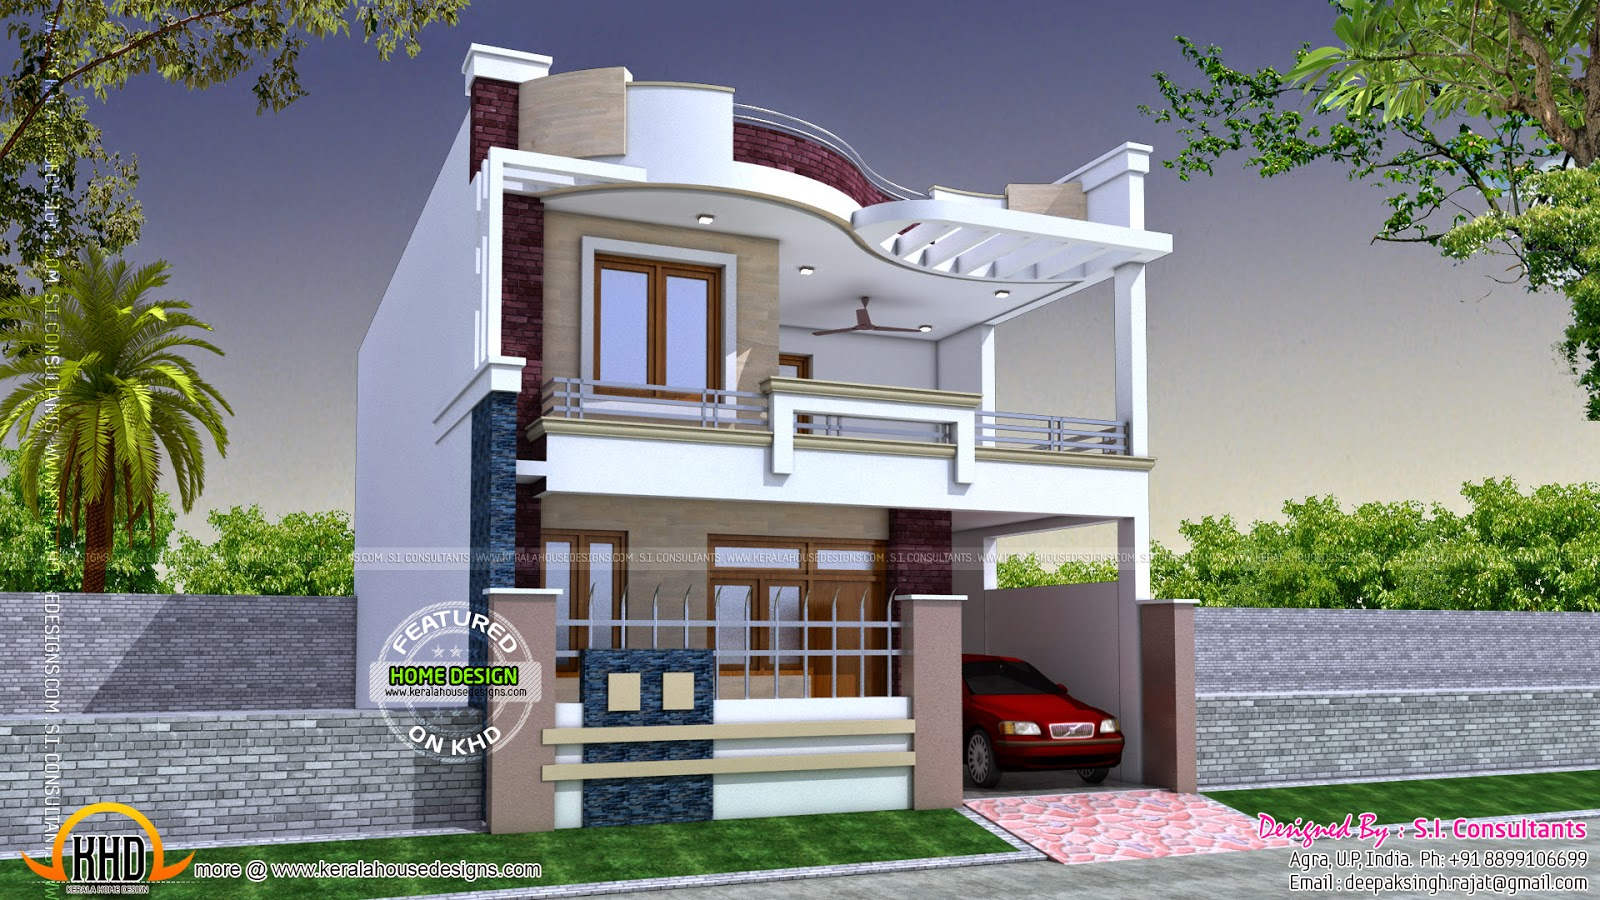 Modern indian home design kerala home design and floor plans for Decorating sites for houses